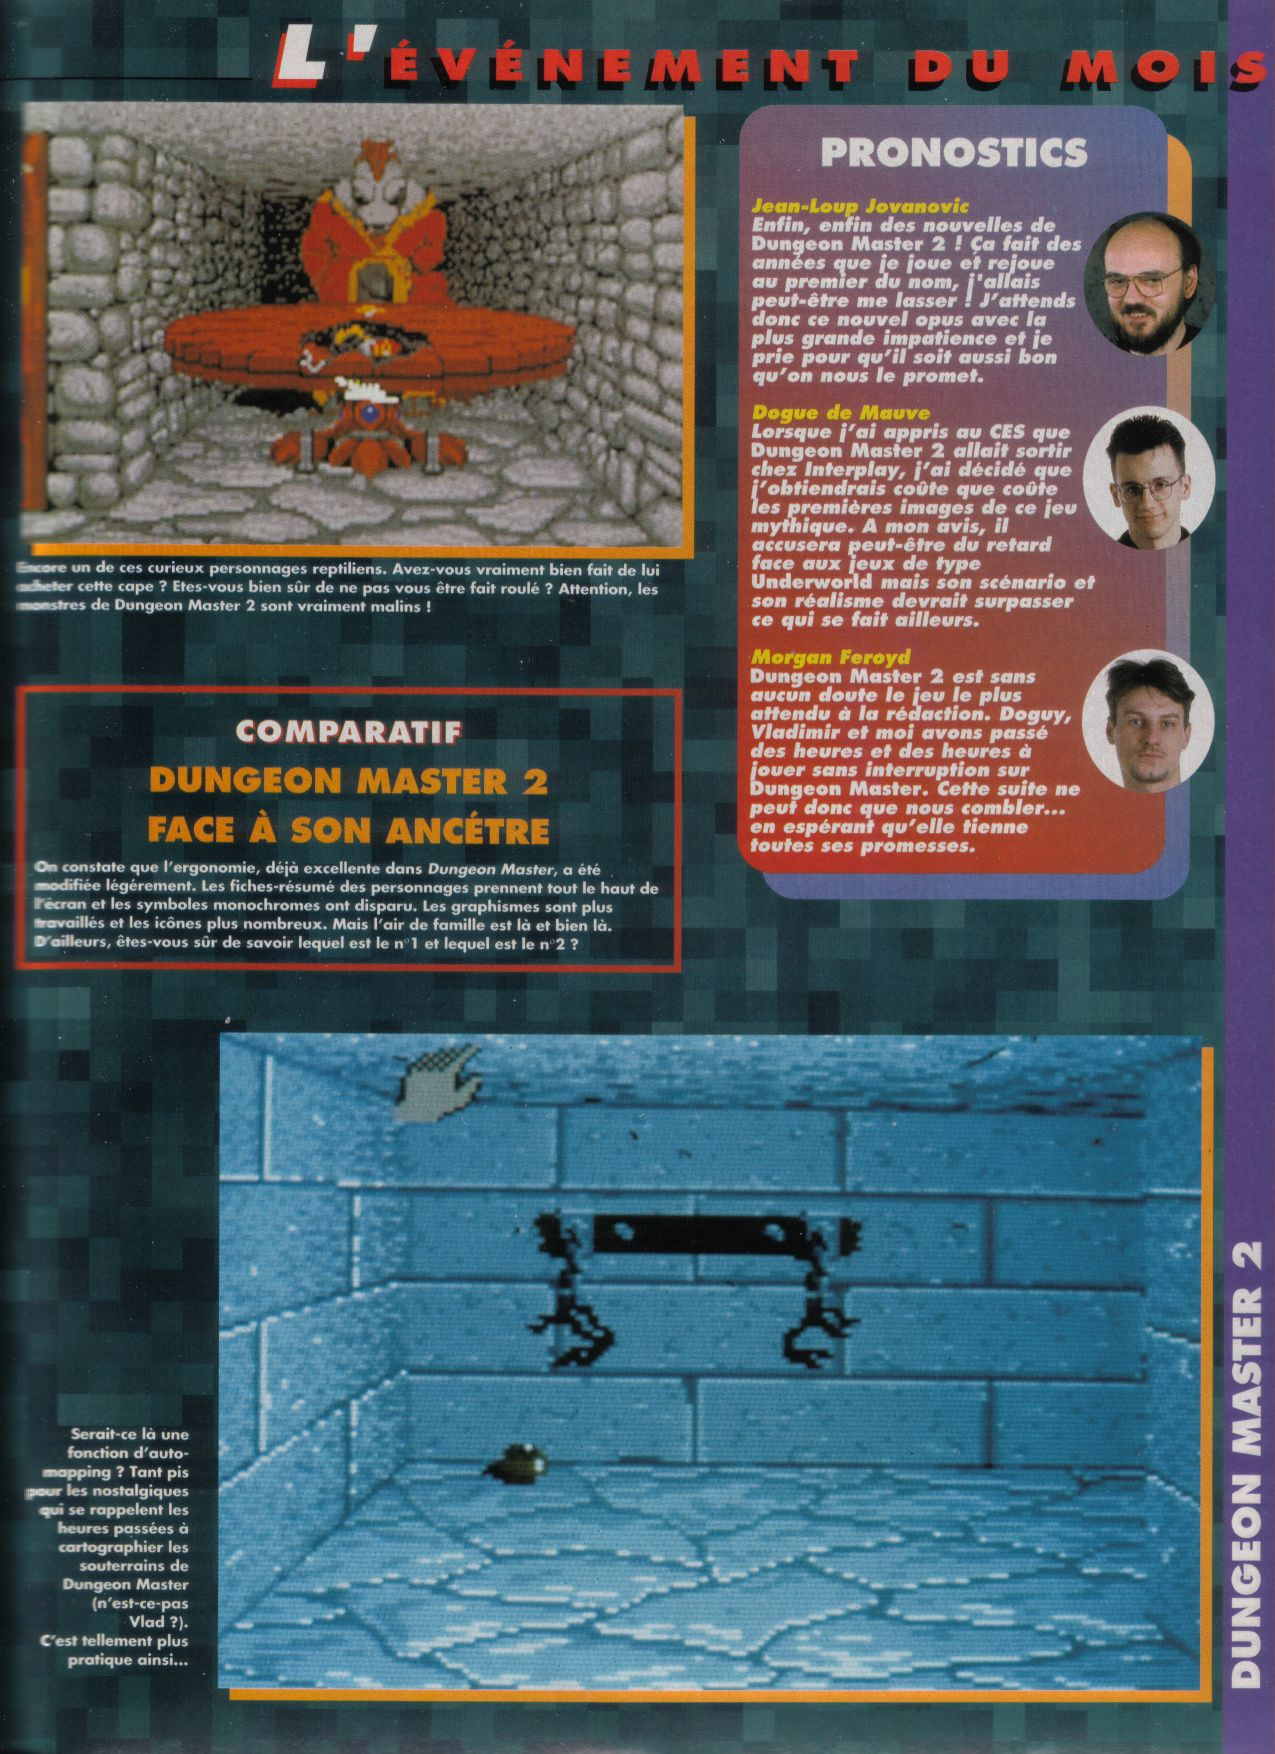 Dungeon Master II for PC / Amiga / Atari ST Preview published in French magazine 'Tilt', Issue #117, September 1993, Page 17